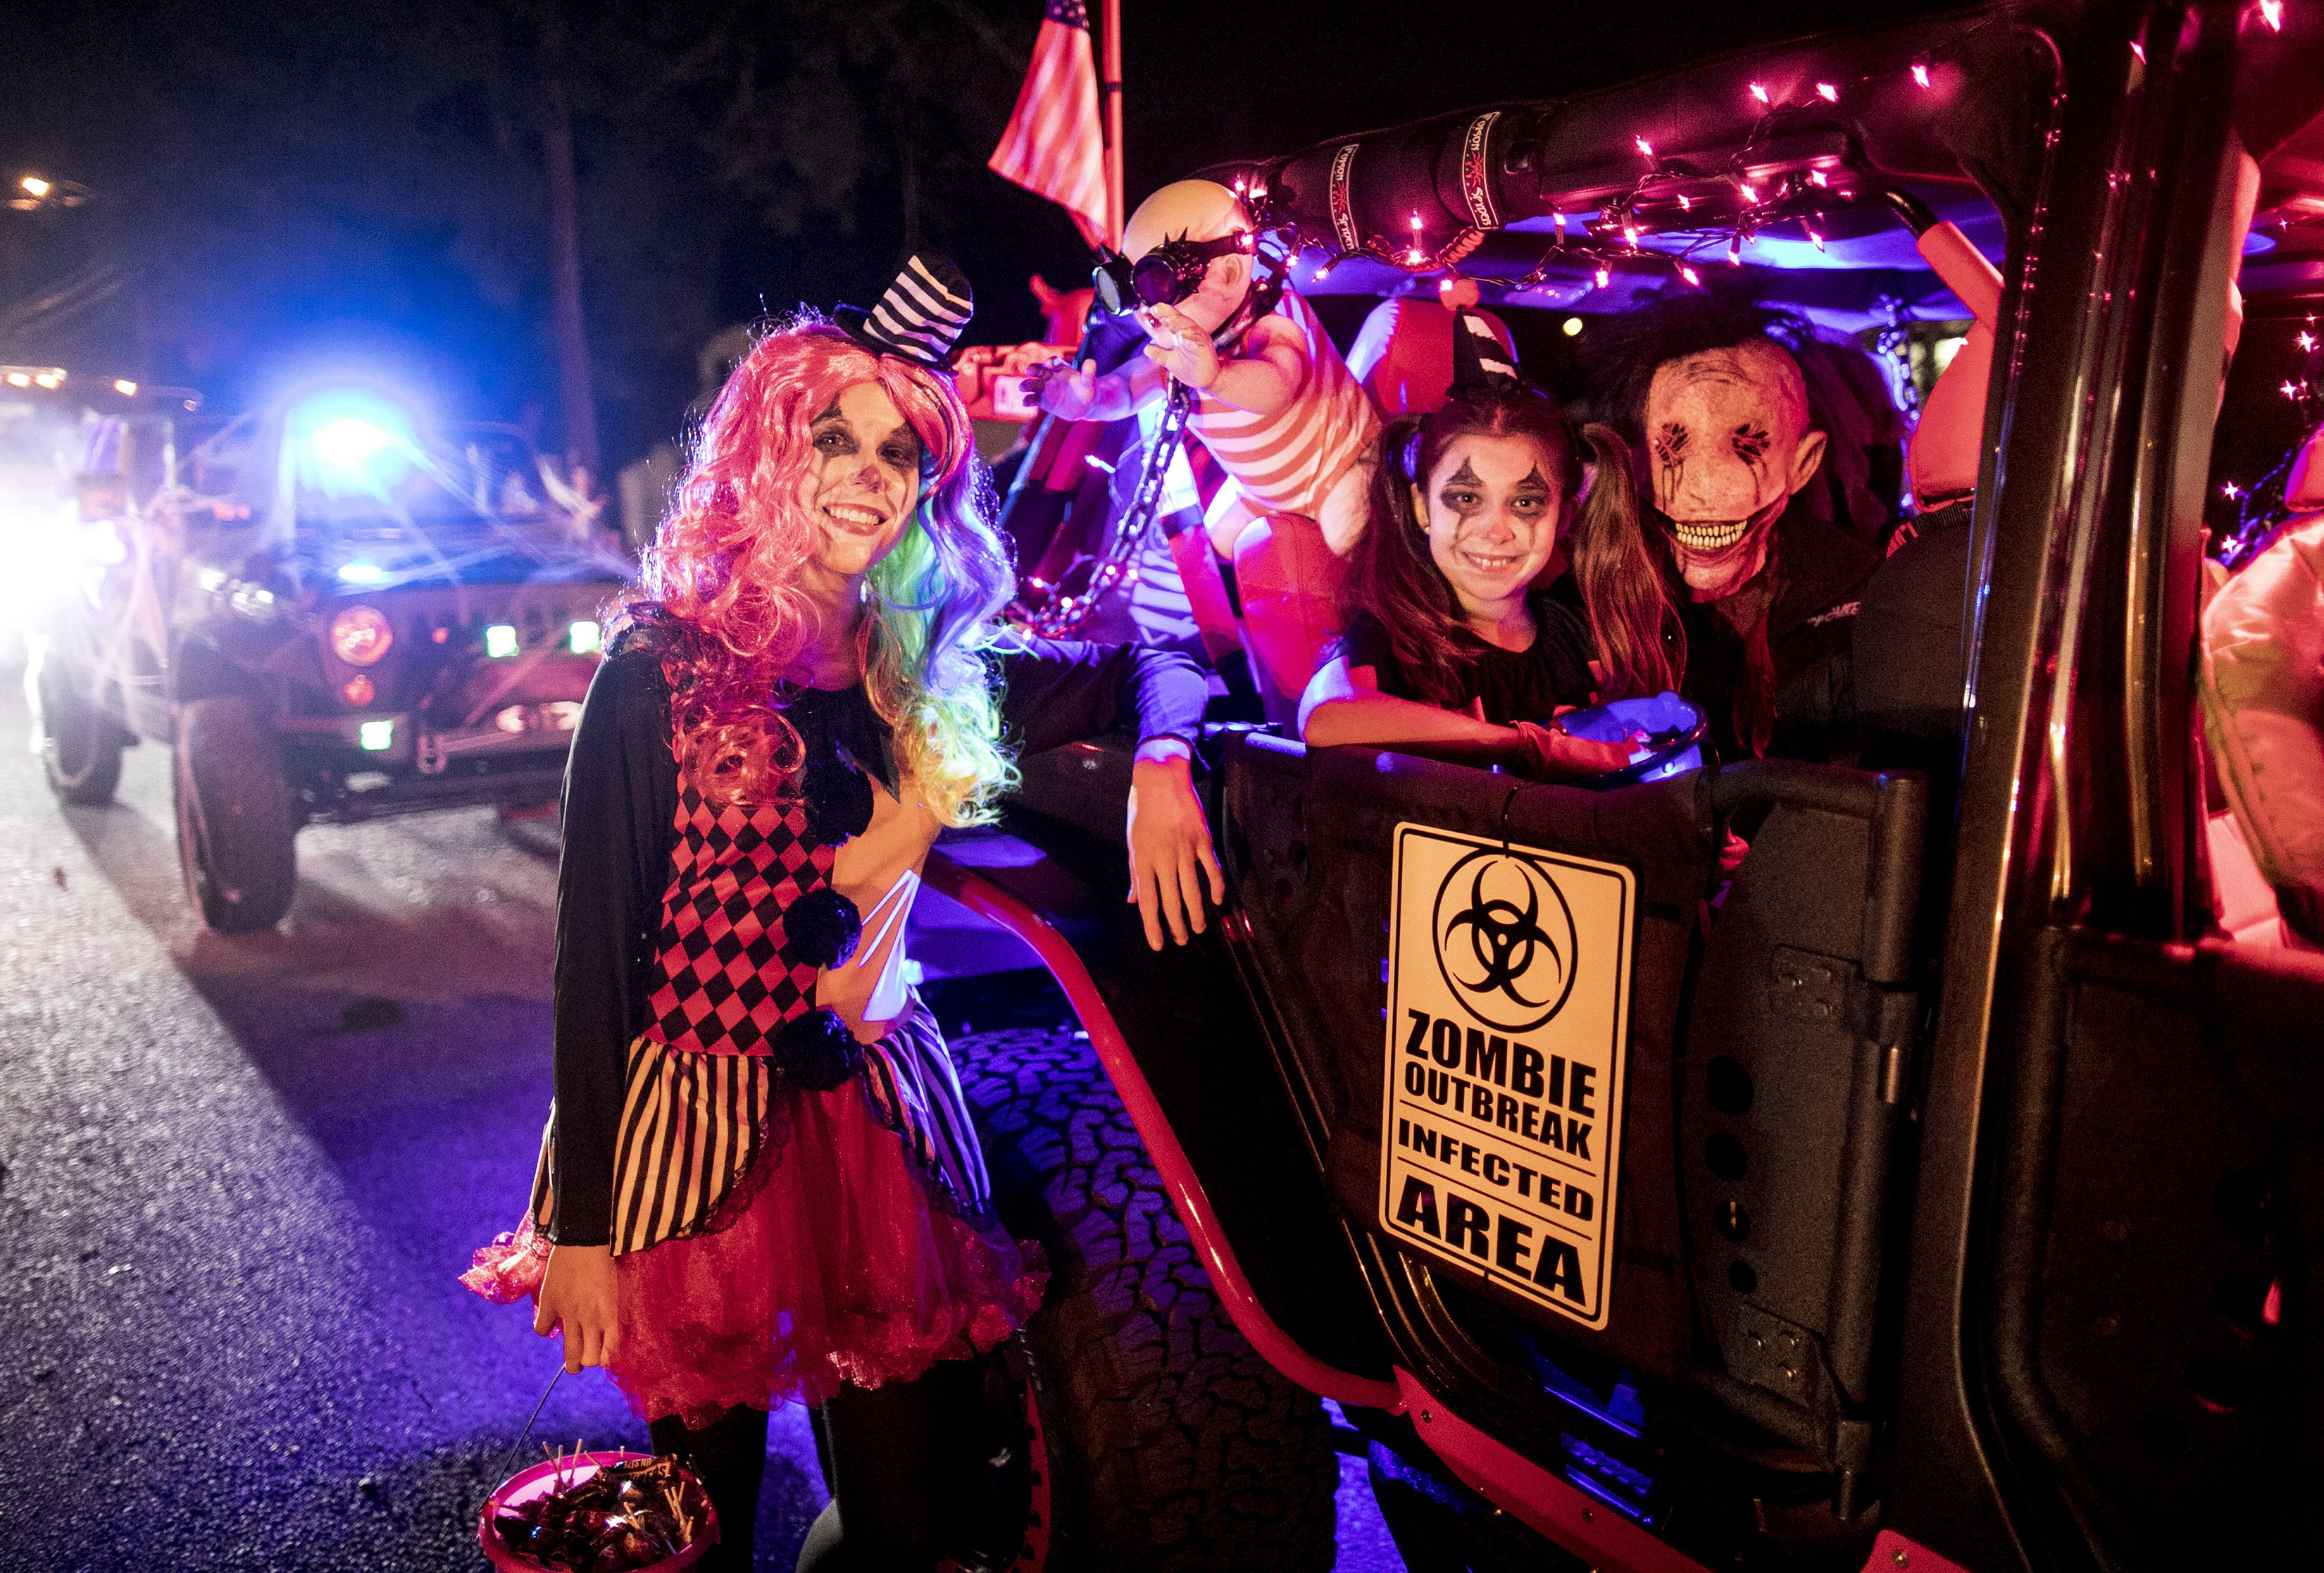 Lancaster County Pa Halloween 2020 Trick or treat night update: Has your town rescheduled Halloween